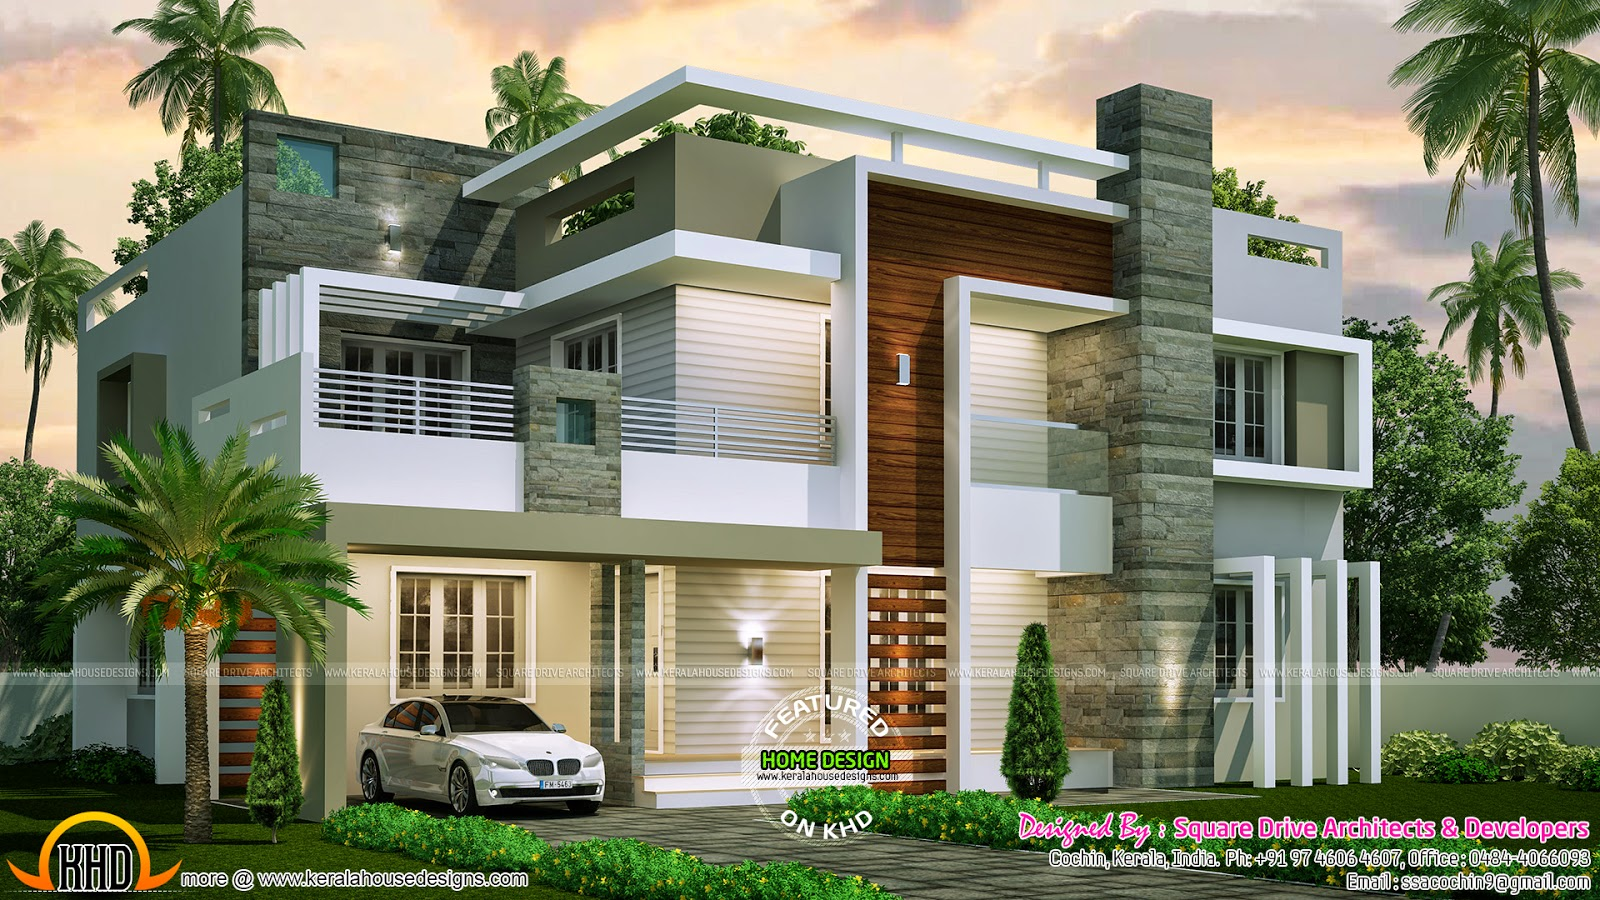 4 bedroom contemporary home design kerala home design for Modern villa design